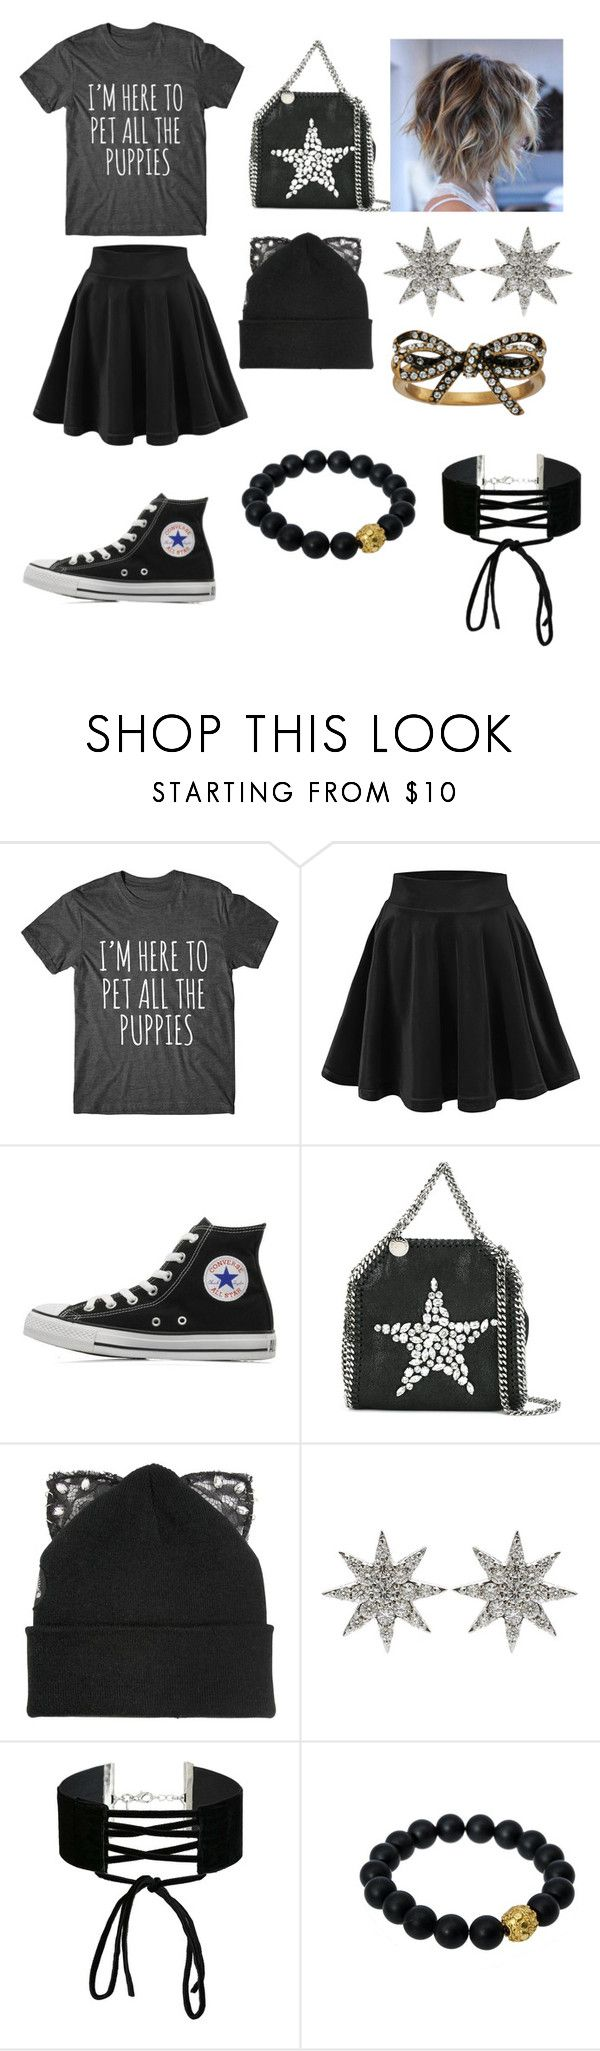 """pet store trip"" by bambihood ❤ liked on Polyvore featuring Converse, STELLA McCARTNEY, Silver Spoon Attire, Bee Goddess, Miss Selfridge, Berluti and Marc Jacobs"